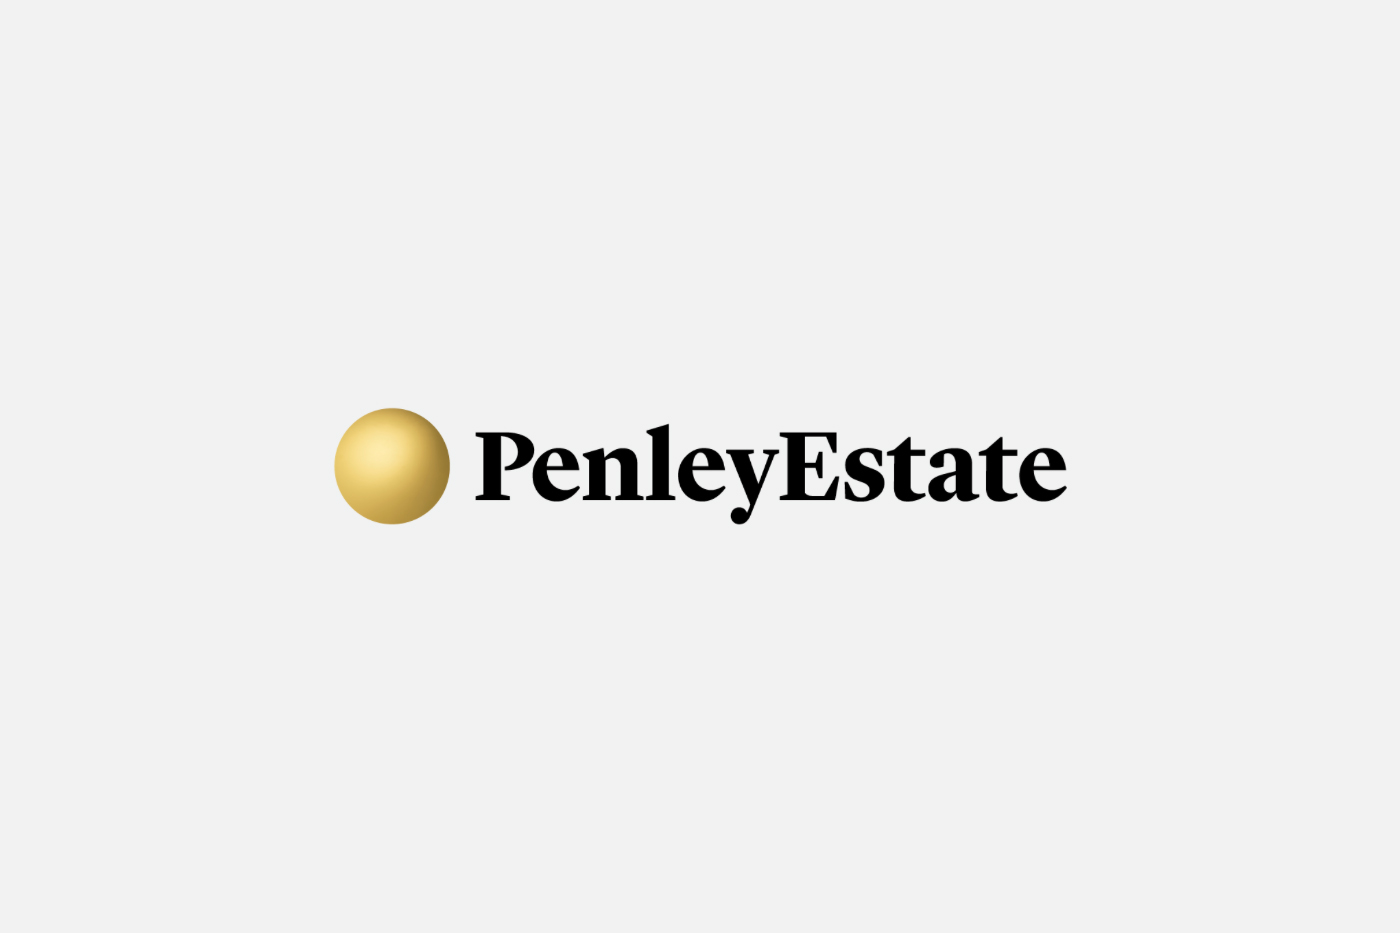 New logo by Parallax Design for family run and award winning winery Penley Estate, Australia